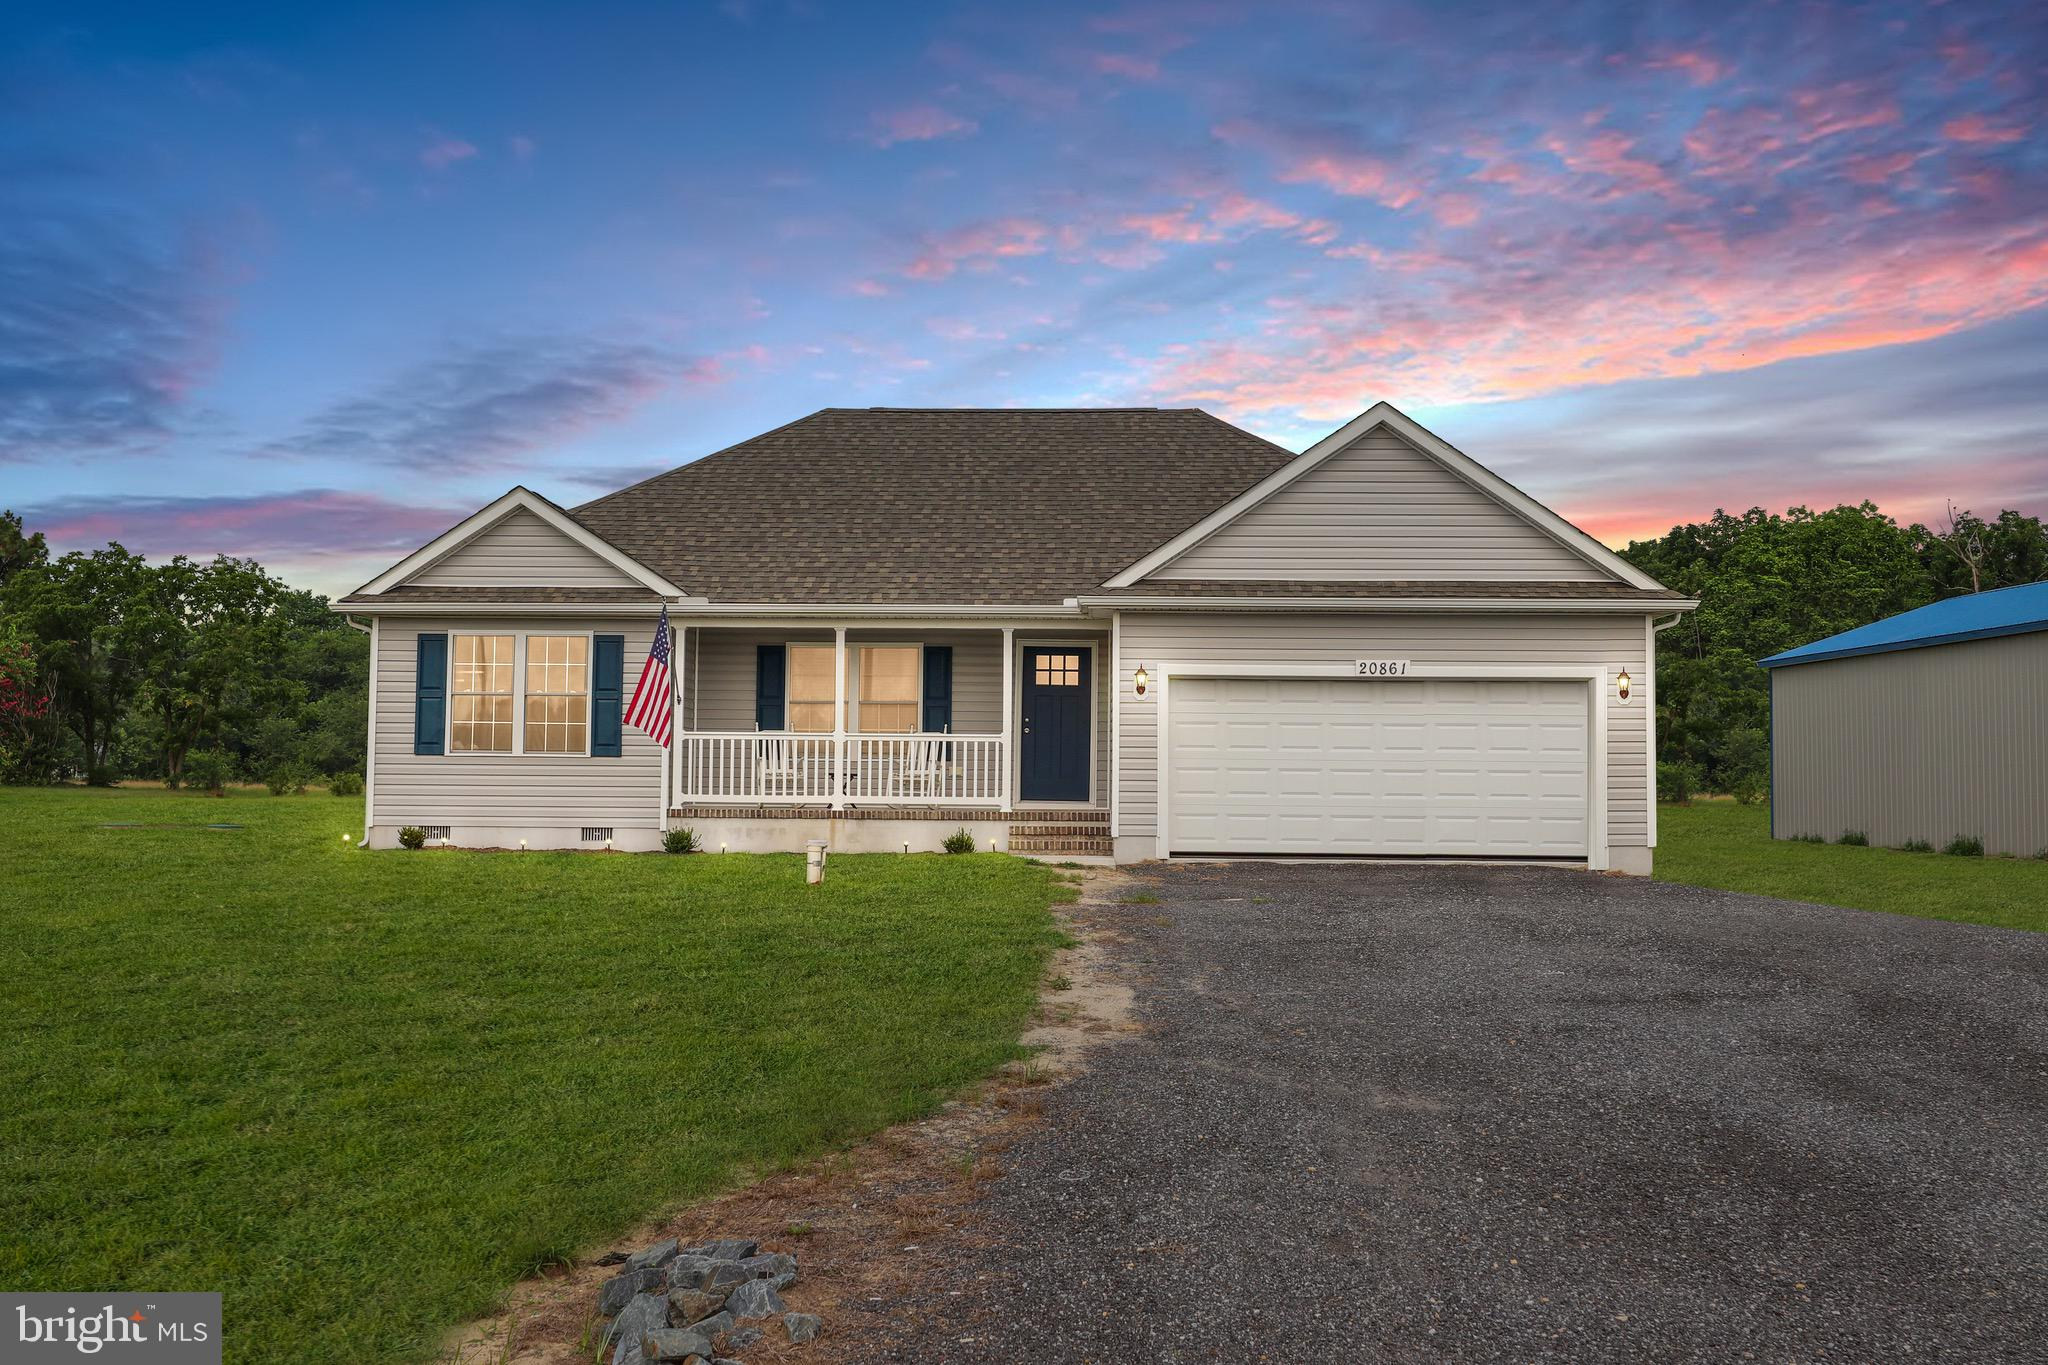 Welcome to Southpointe Crossing - a quiet community with easy access to Rt. 13 and Alt. 13. This ran